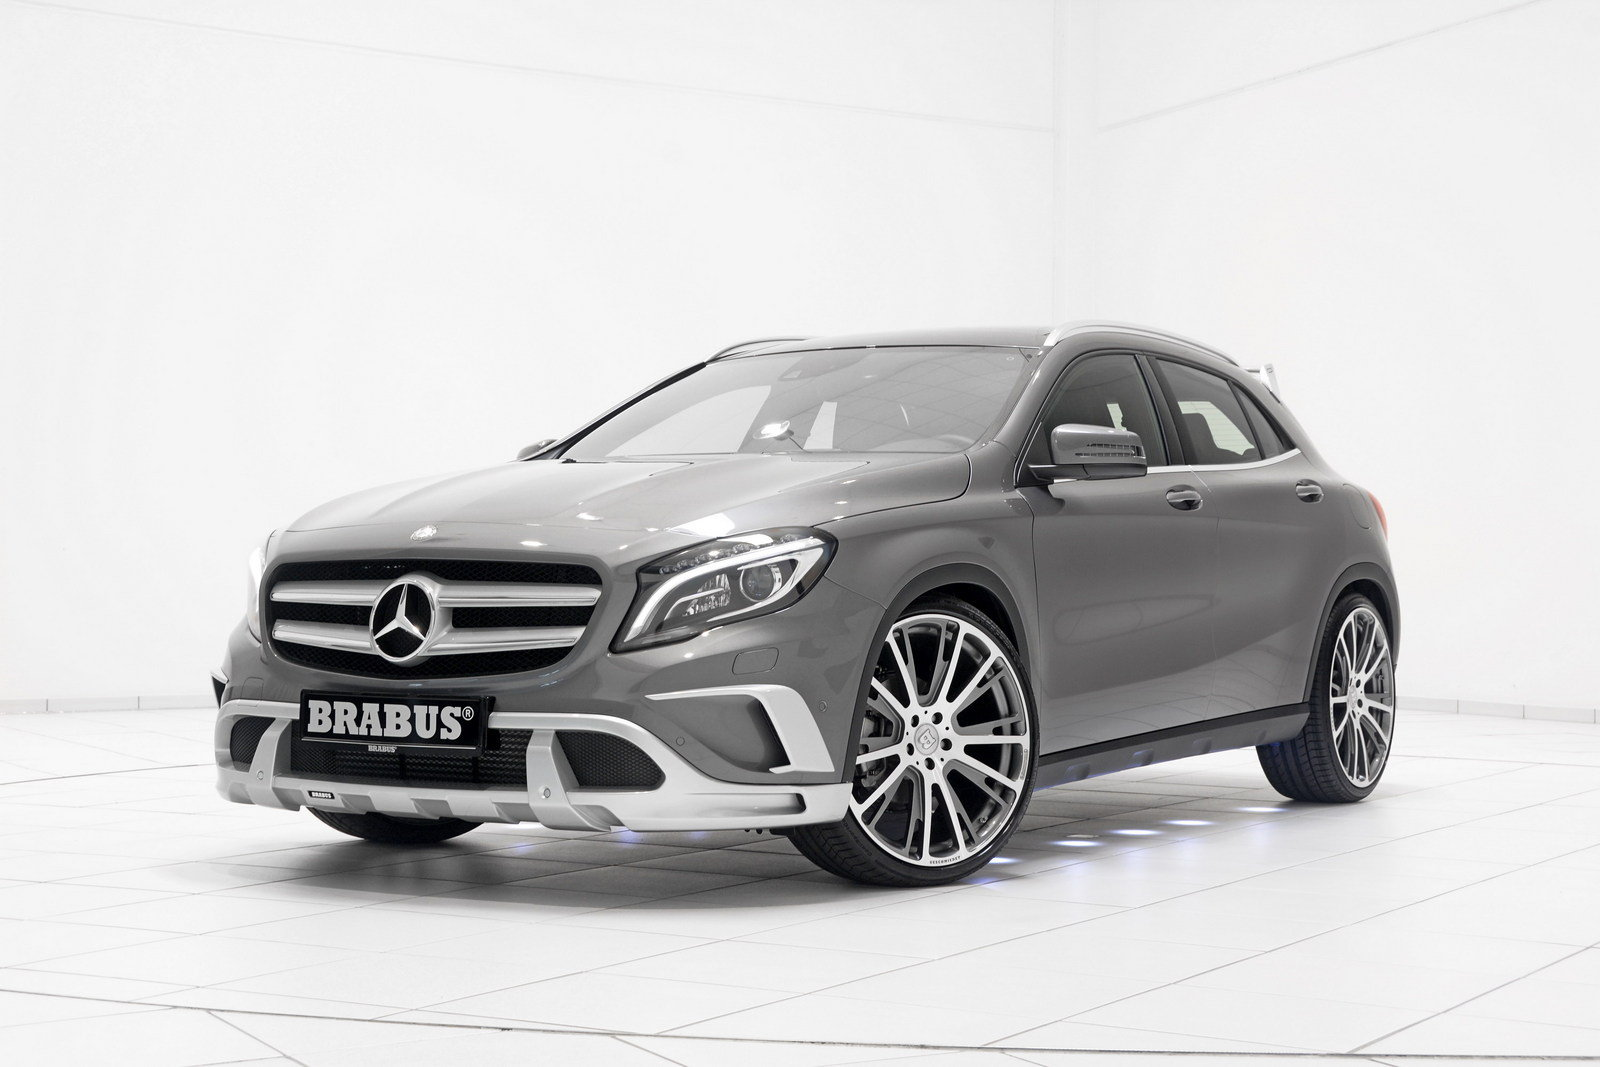 2015 mercedes gla class by brabus review top speed. Black Bedroom Furniture Sets. Home Design Ideas